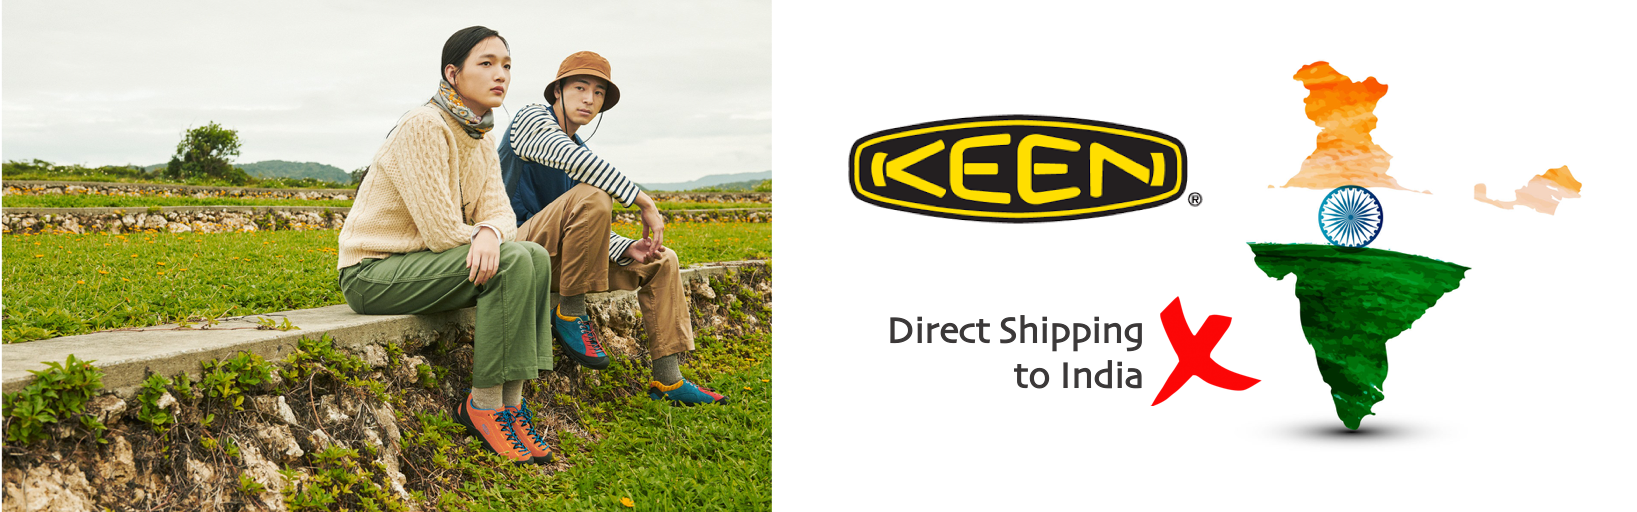 shop KEEN ship to india